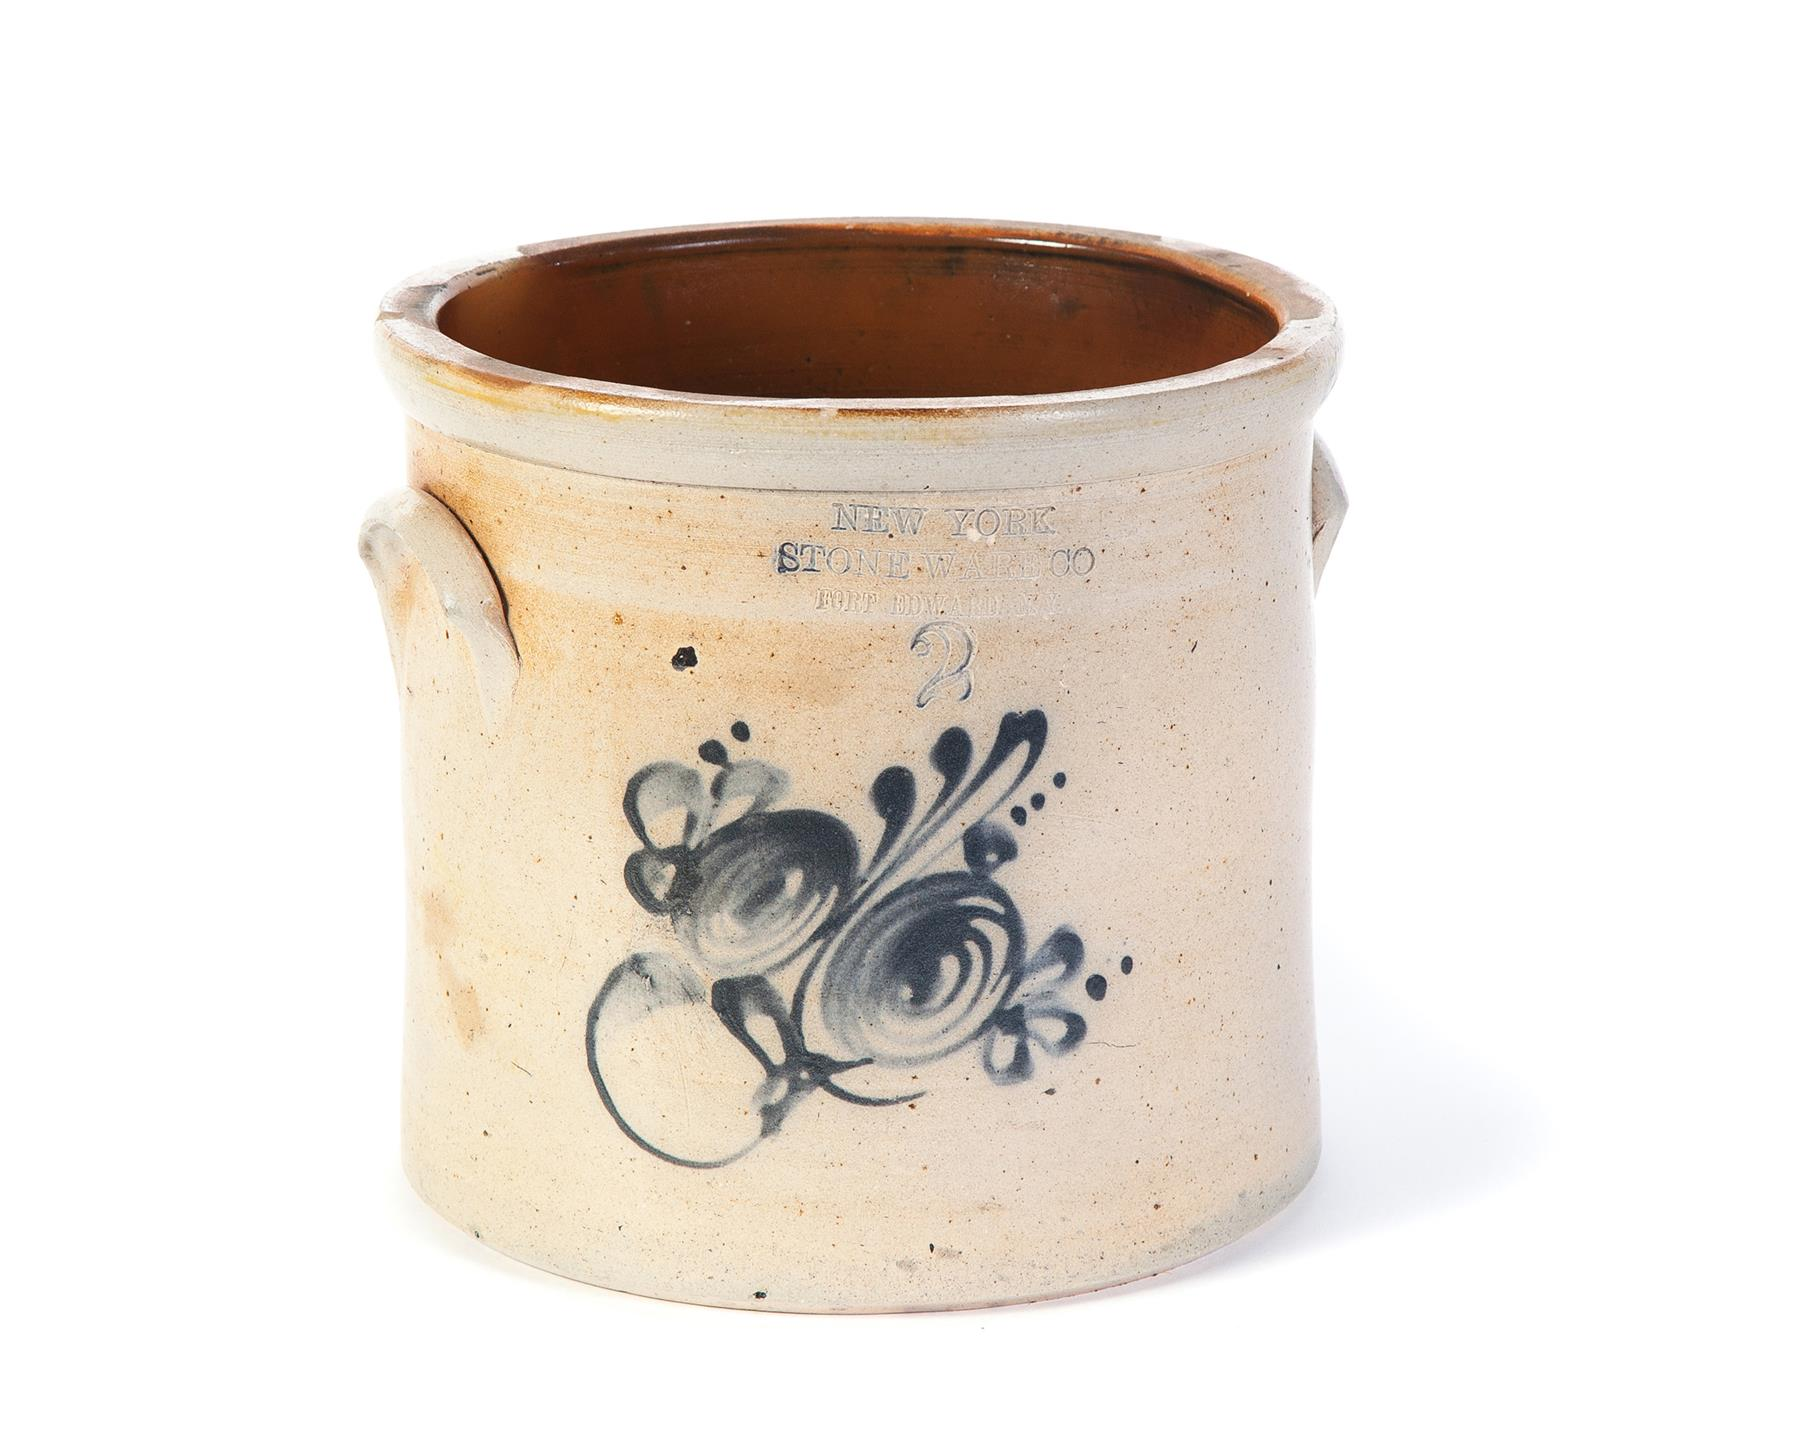 TWO-GALLON STONEWARE JAR.  American, 2nd